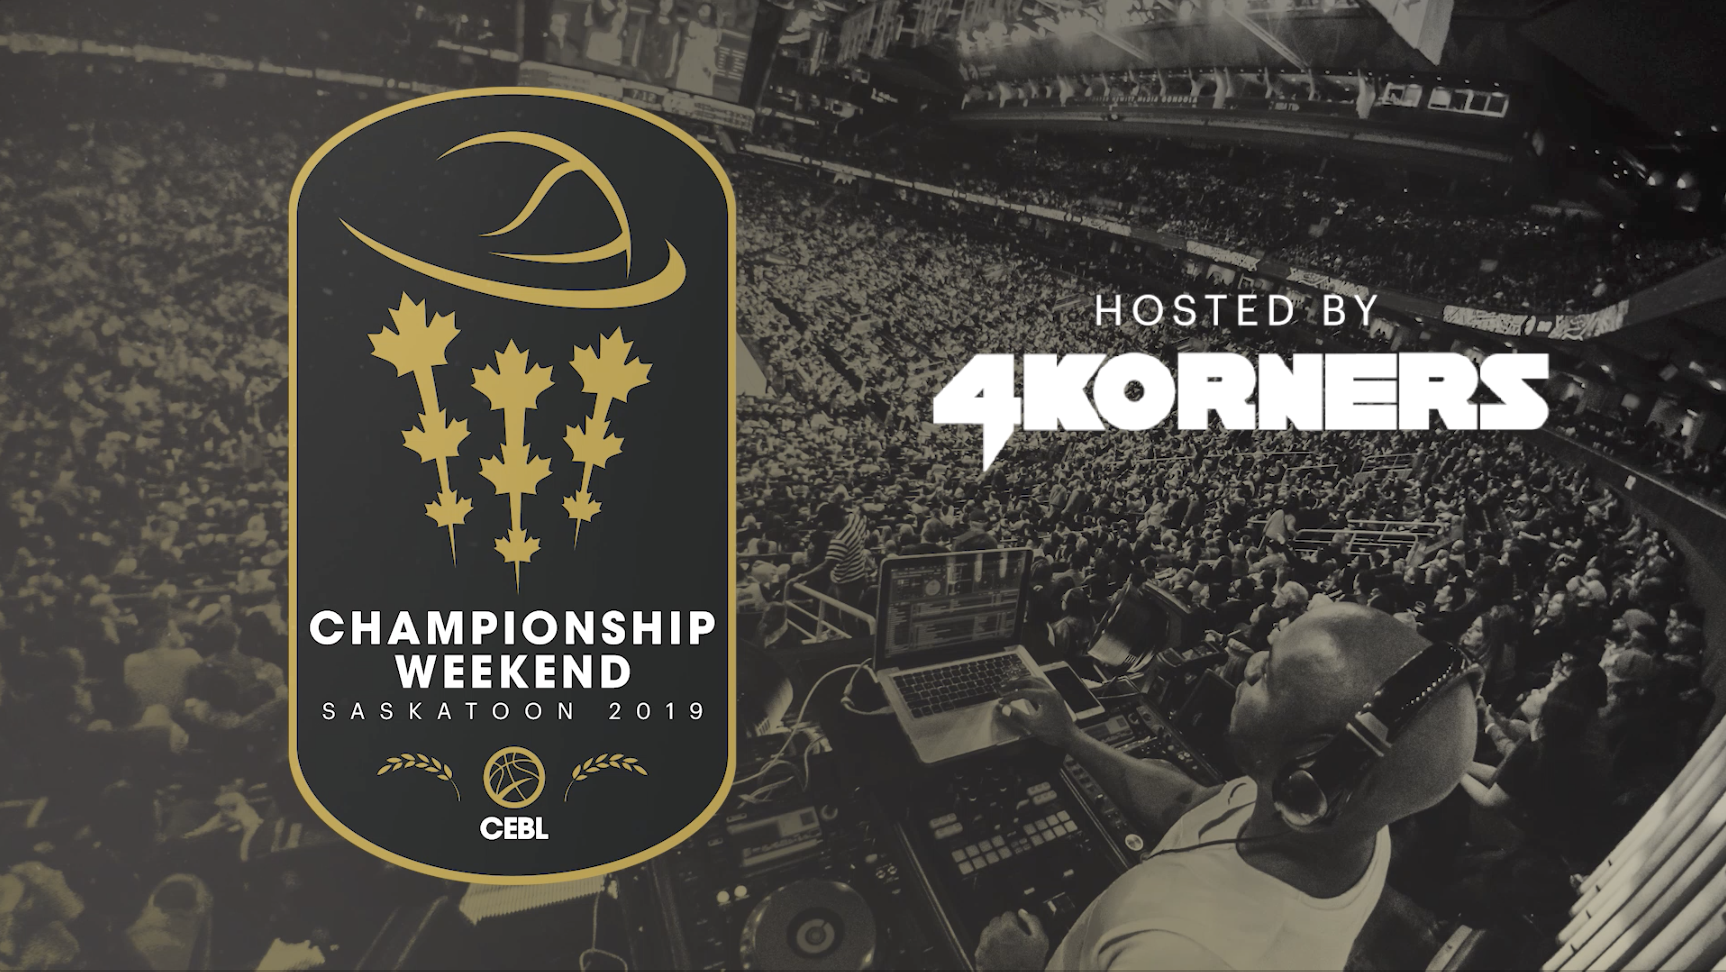 Canadian Elite Basketball League (CEBL) announce 4Korners as host DJ of Championship Weekend